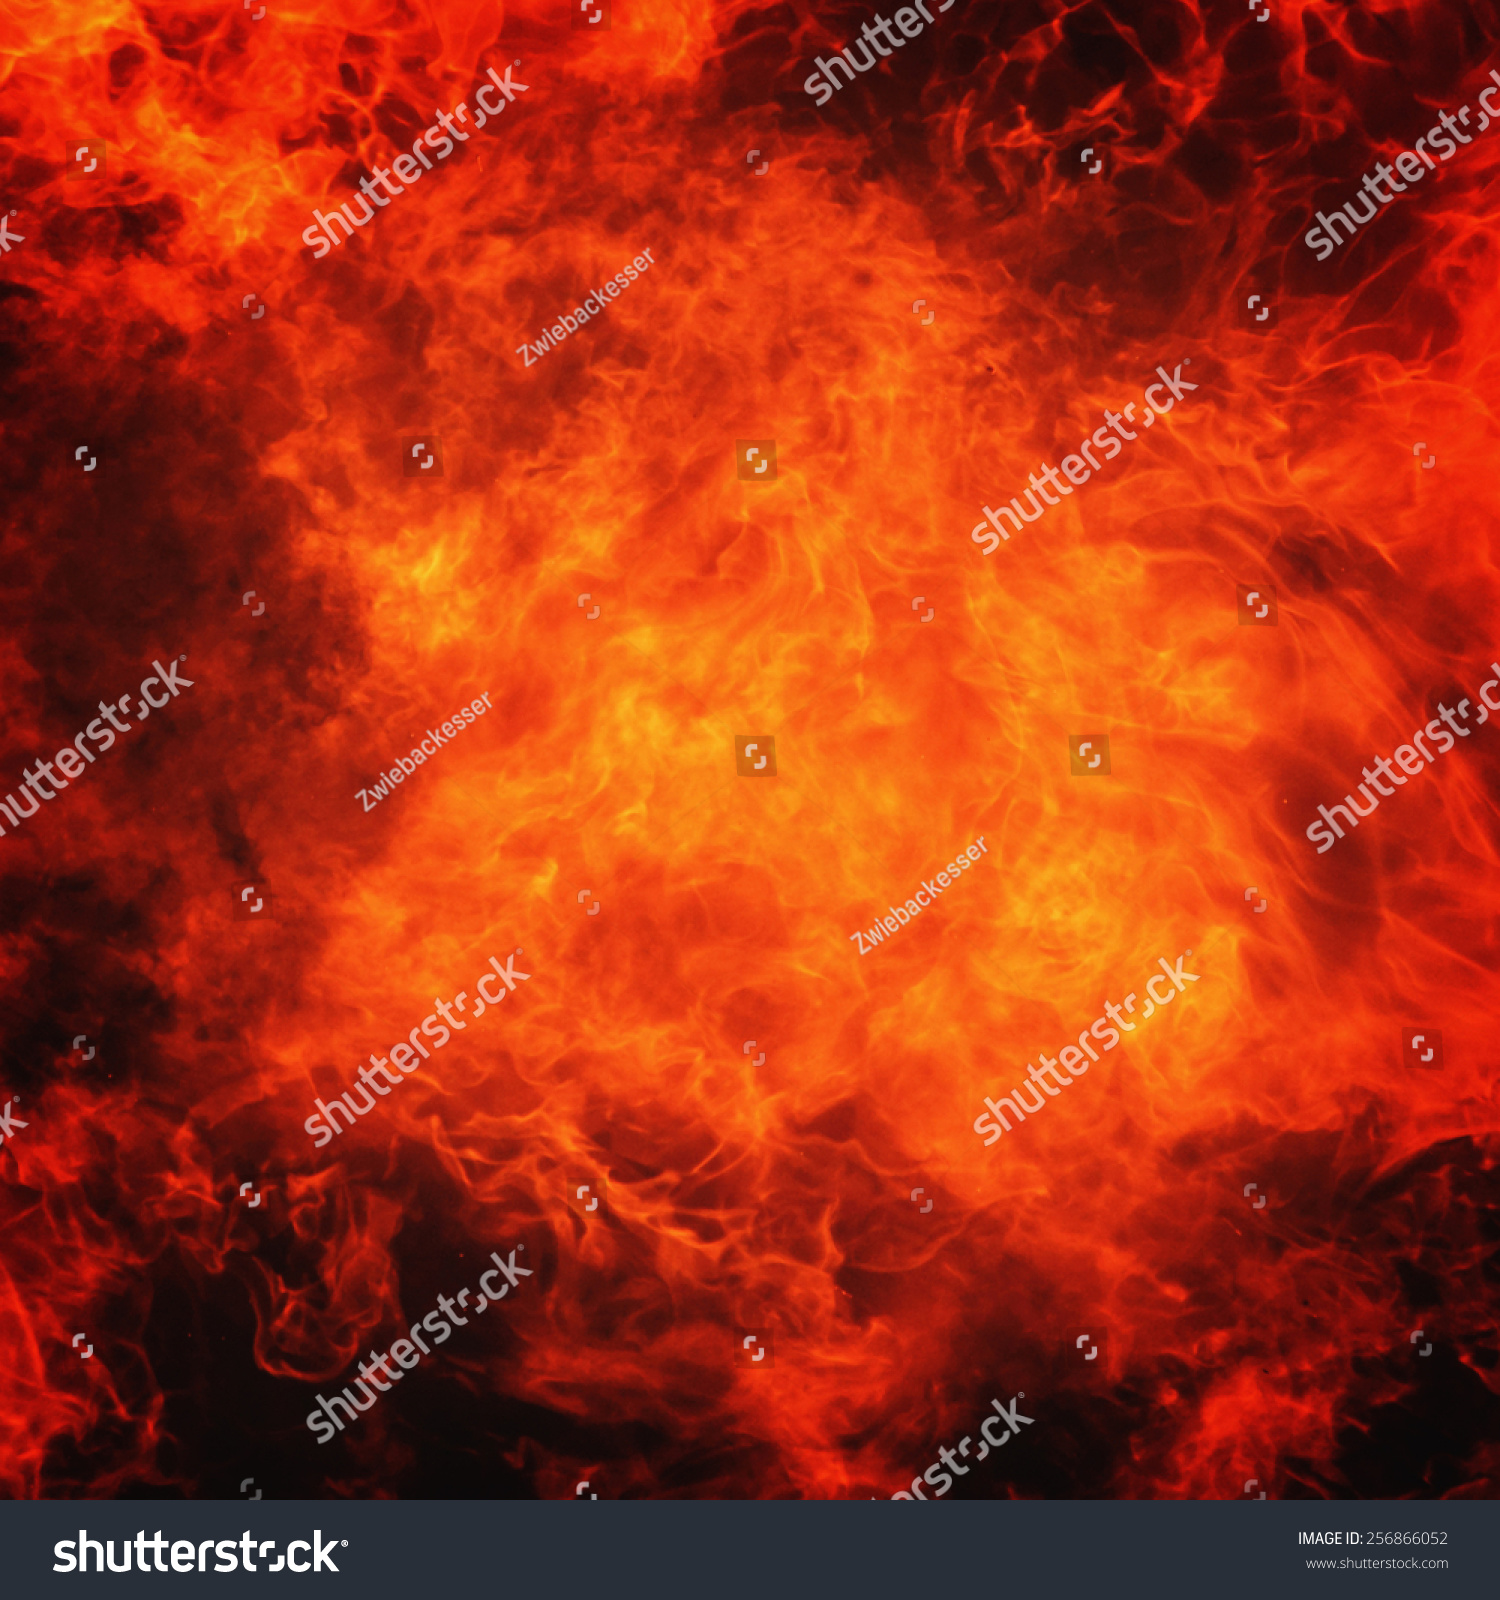 Background Of Fire As A Symbol Of Hell And Eternal Torment Ez Canvas